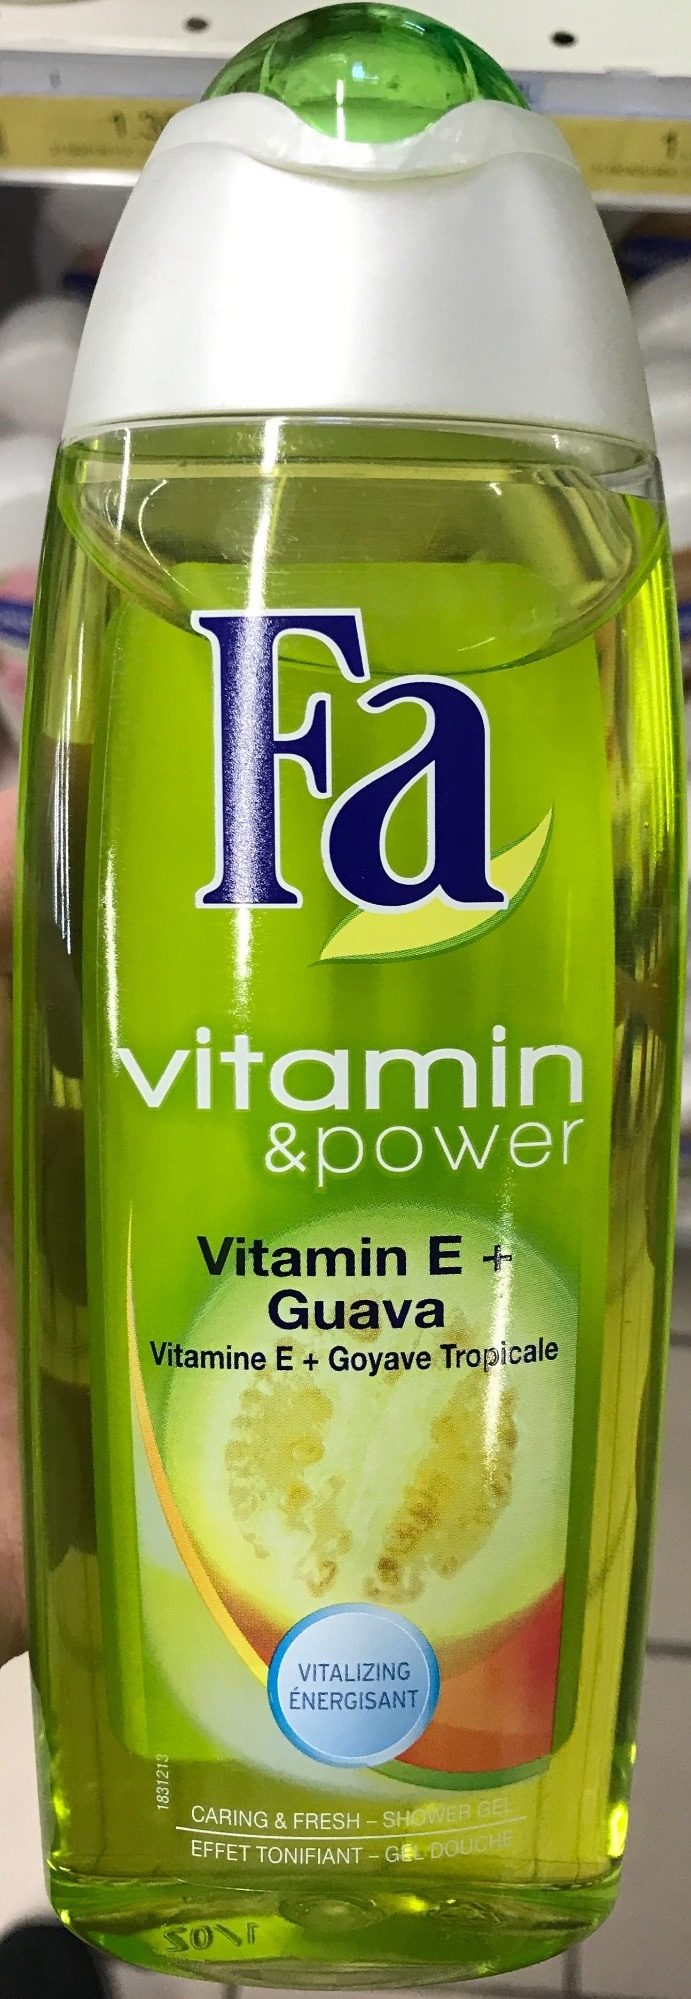 Vitamin & Power Vitamin E + Guava Energisant - Produit